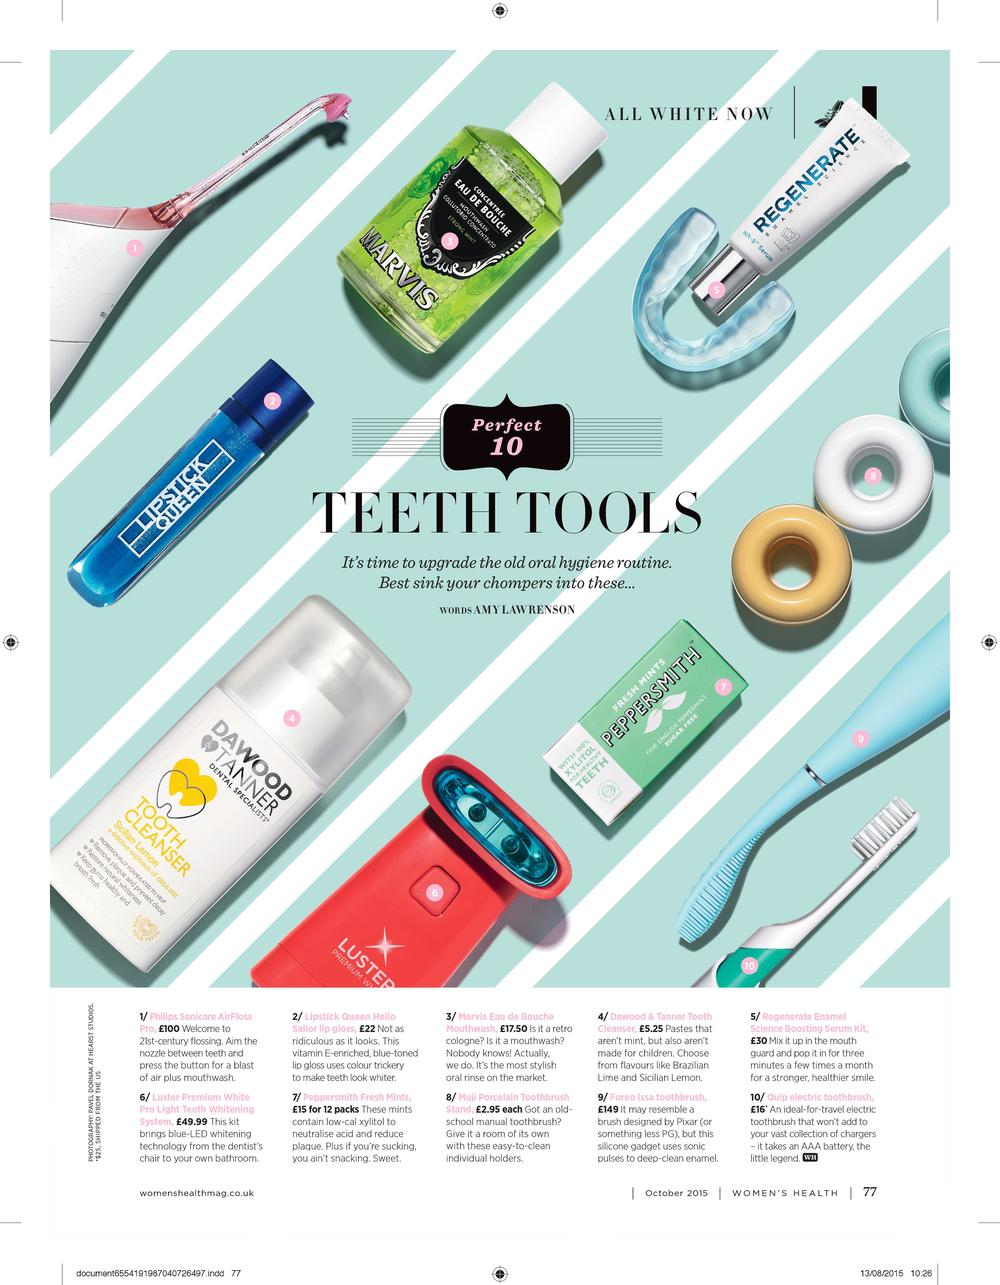 Perfect 10: Teeth Tools